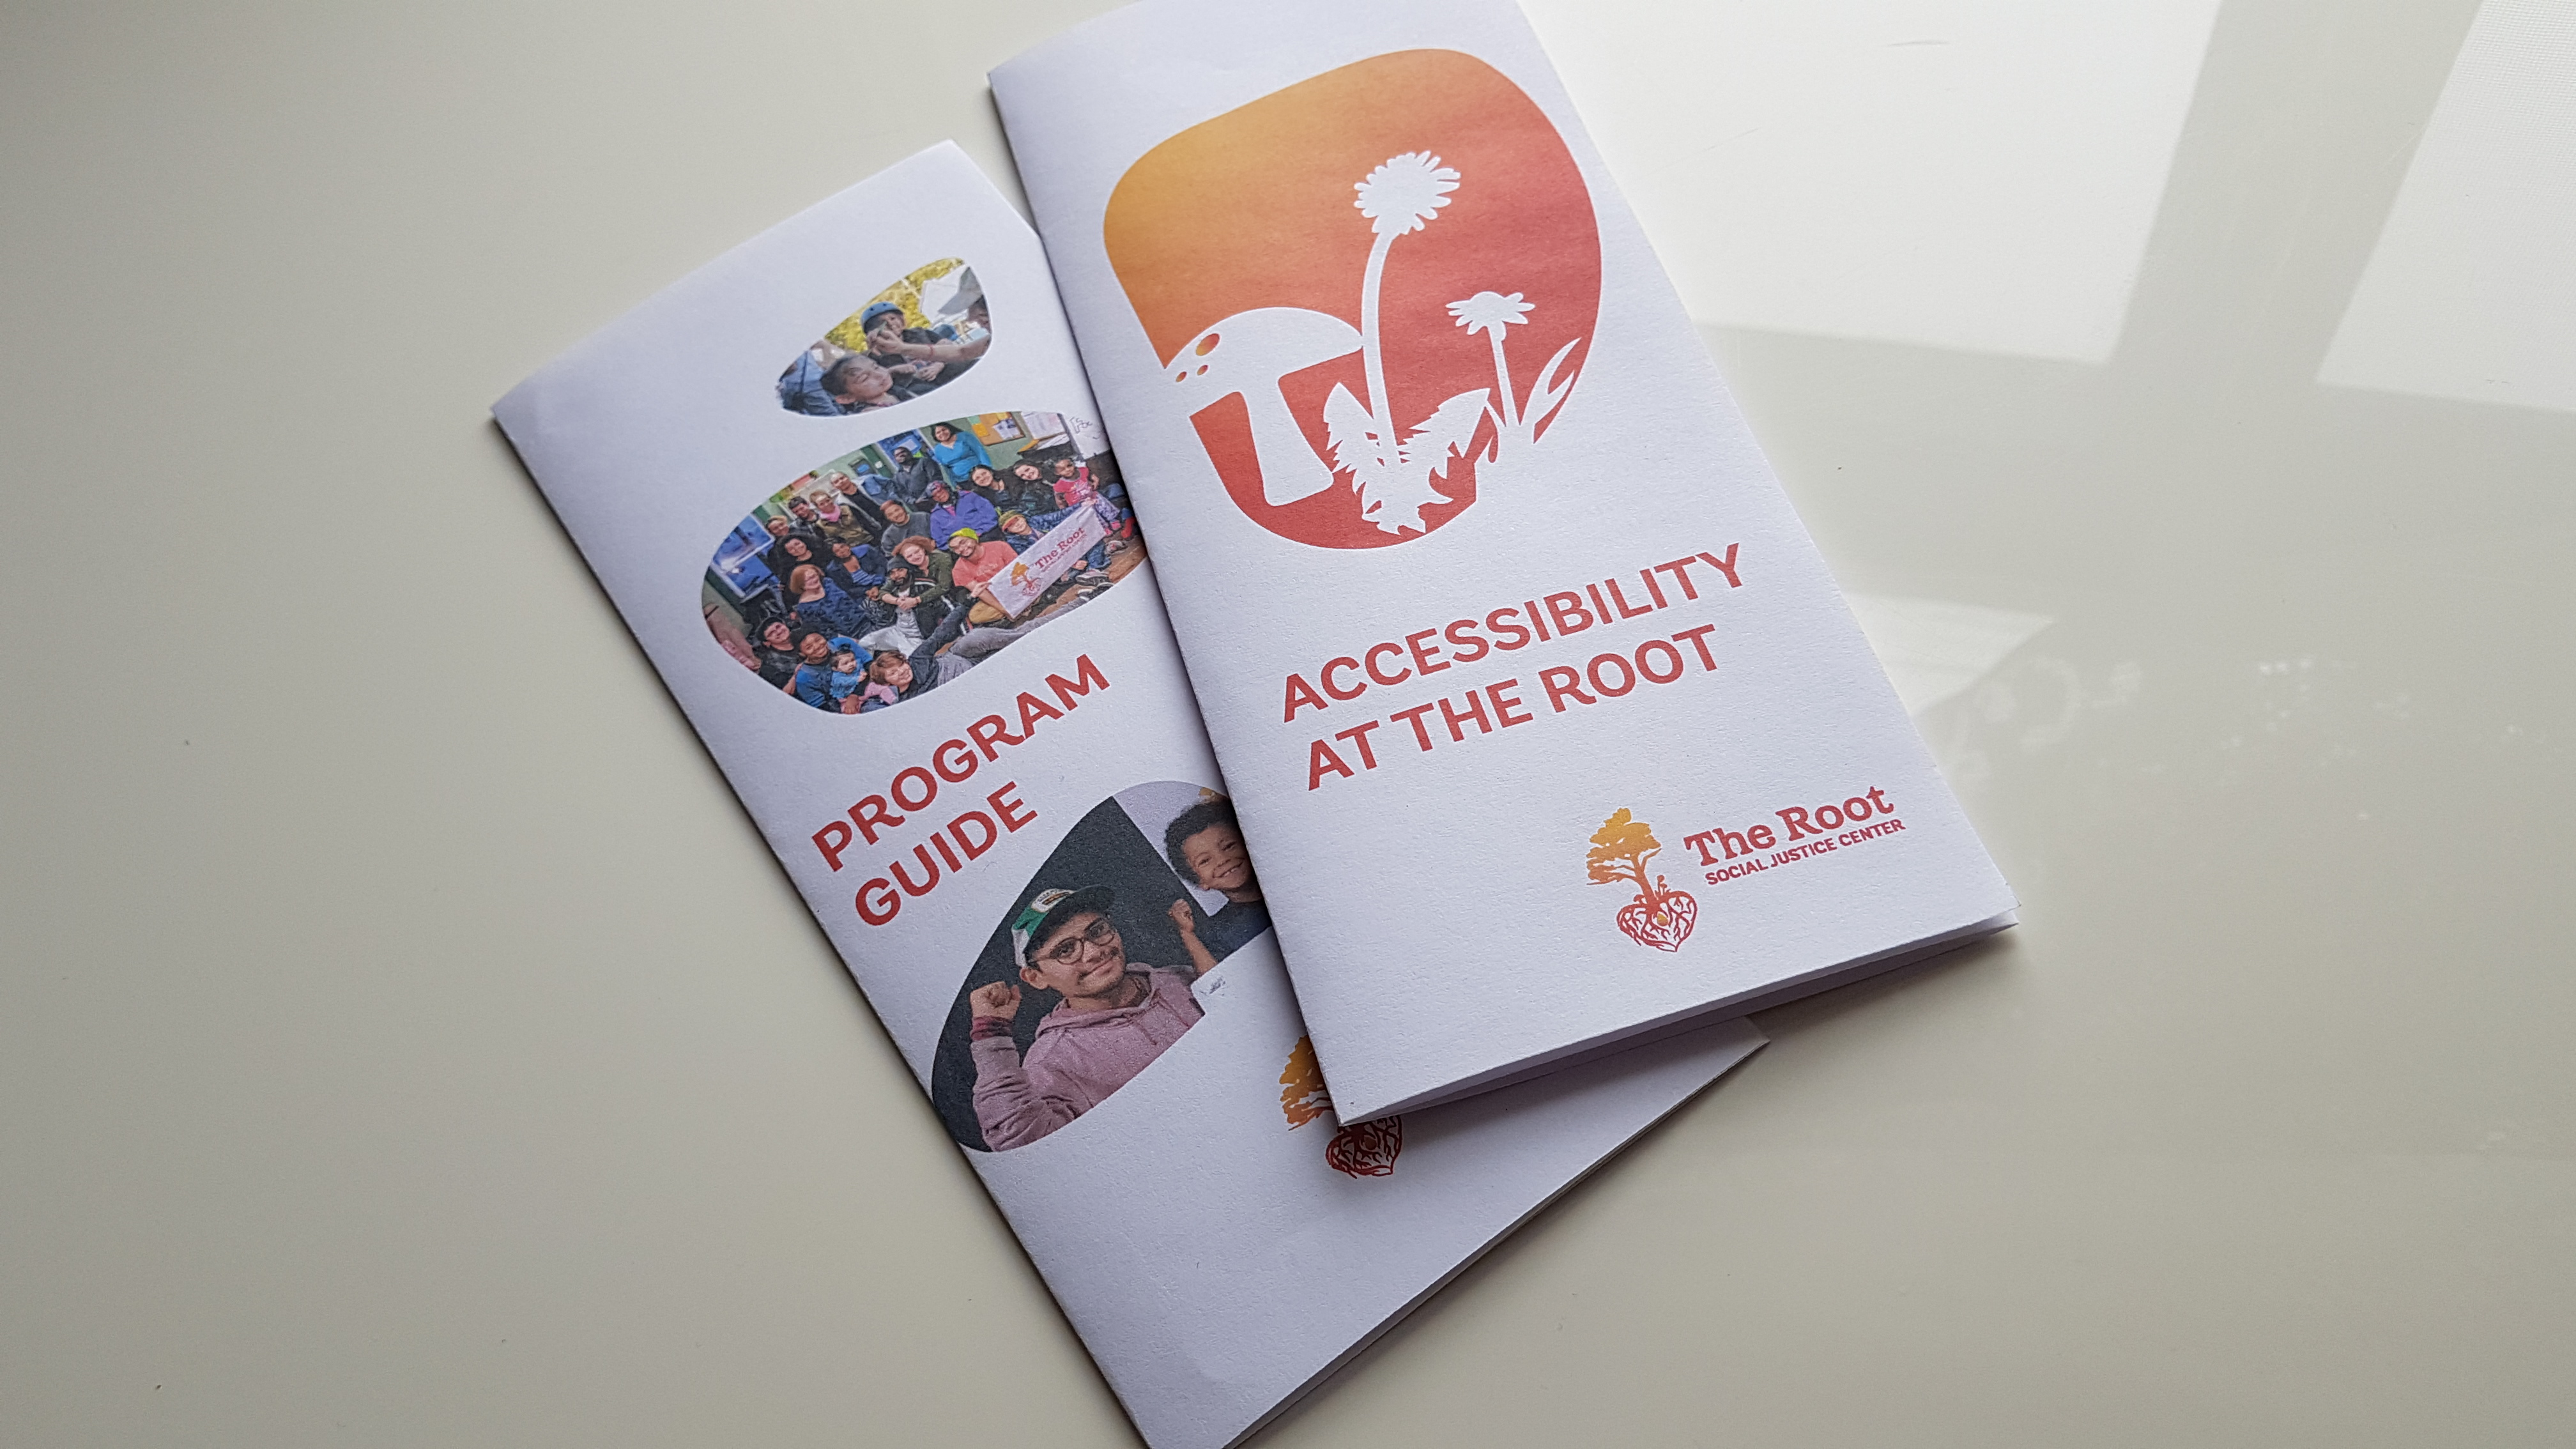 "Photo: Two folded brochures sit on a white surface, one stacked on the other. The top brochure reads ""Accessibility at The Root"" and has silhouettes of a toadstool and dandelions against a gradient gold to red background, inside a rock-shaped frame. In the bottom right hand corner is The Root logo. The one below it reads ""Program Guide"" and has 3 photos of various people, mainly people of colour, inside of rock shaped frames."